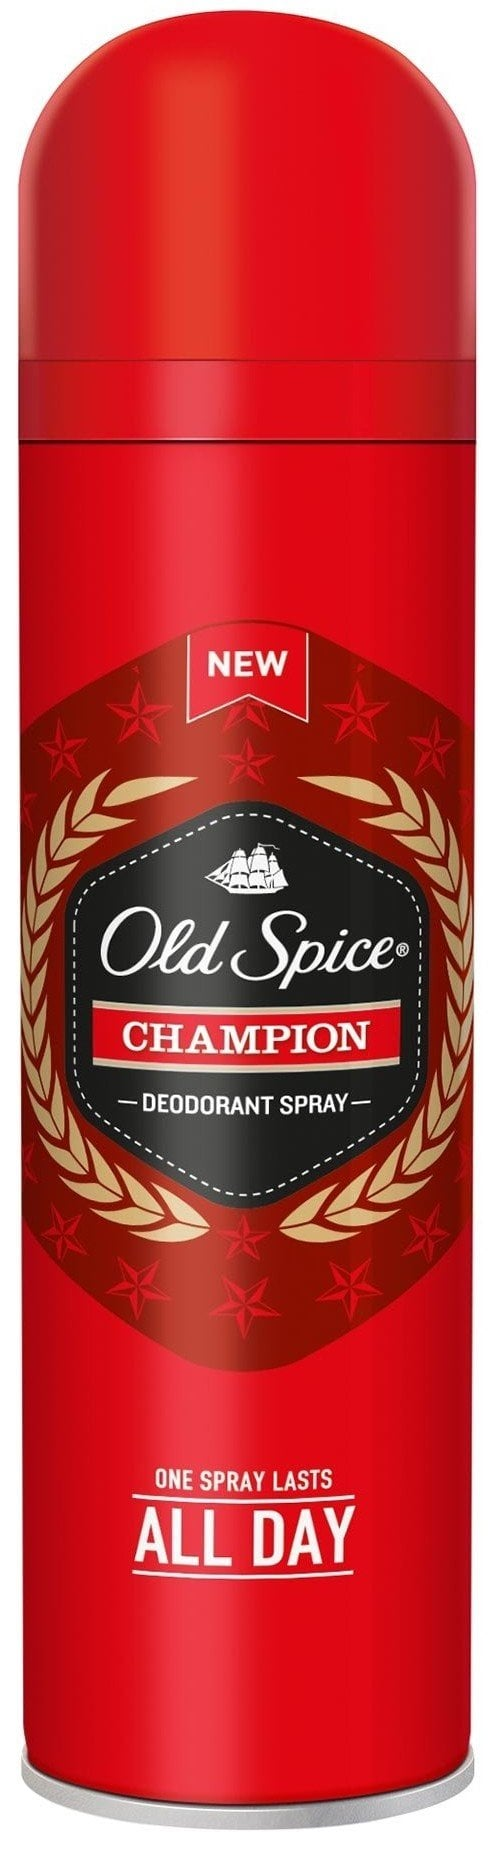 OLD SPICE DEO SPRAY CHAMPION 125ML